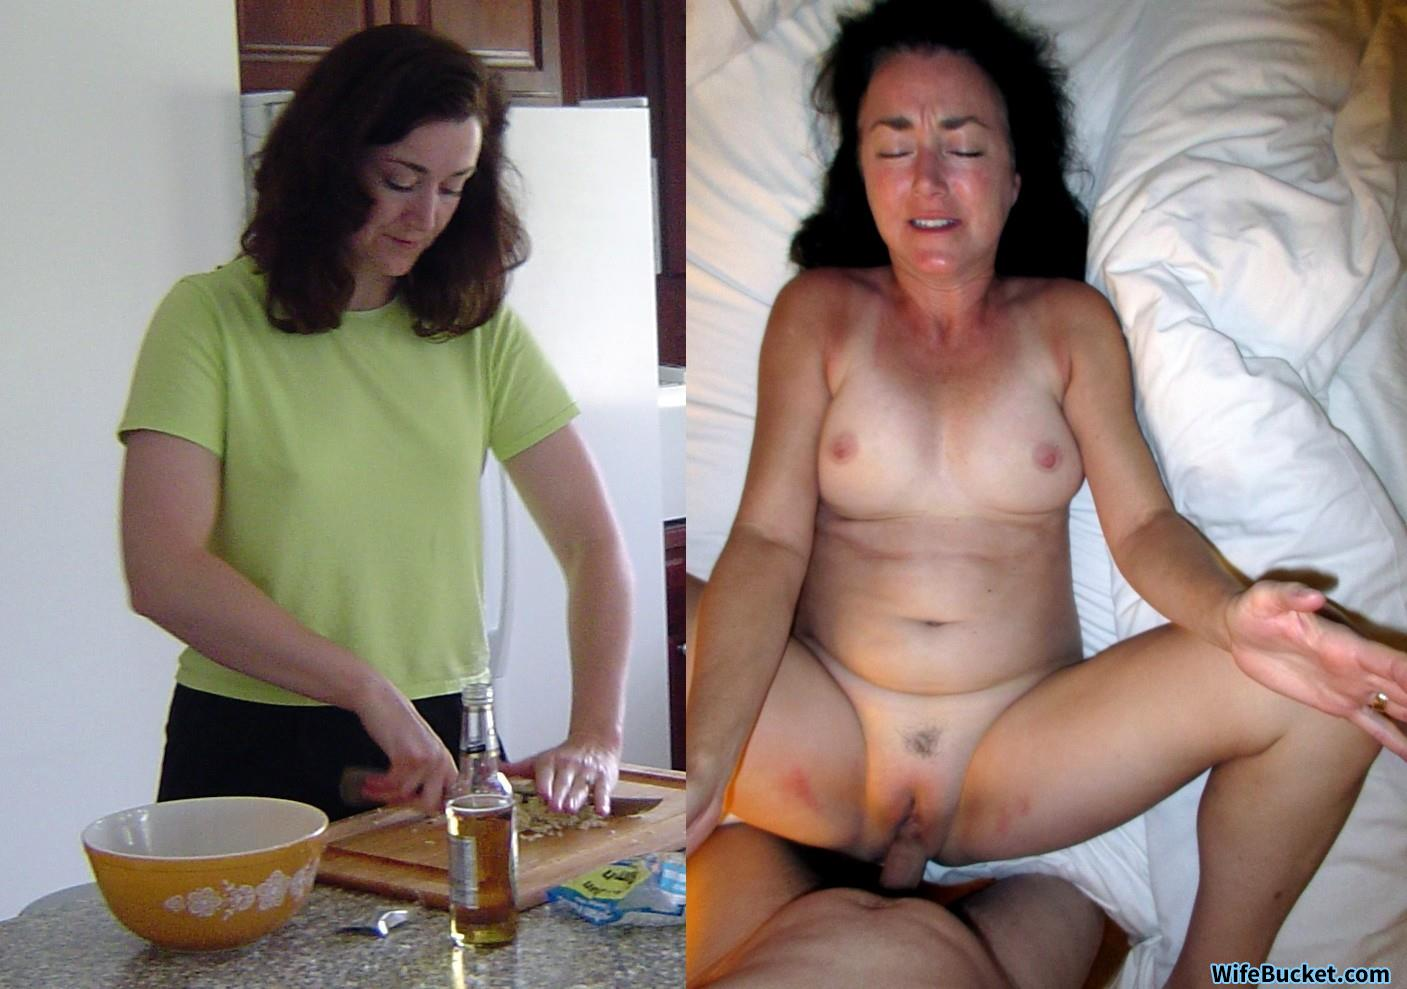 Wifebucket before and after nude can